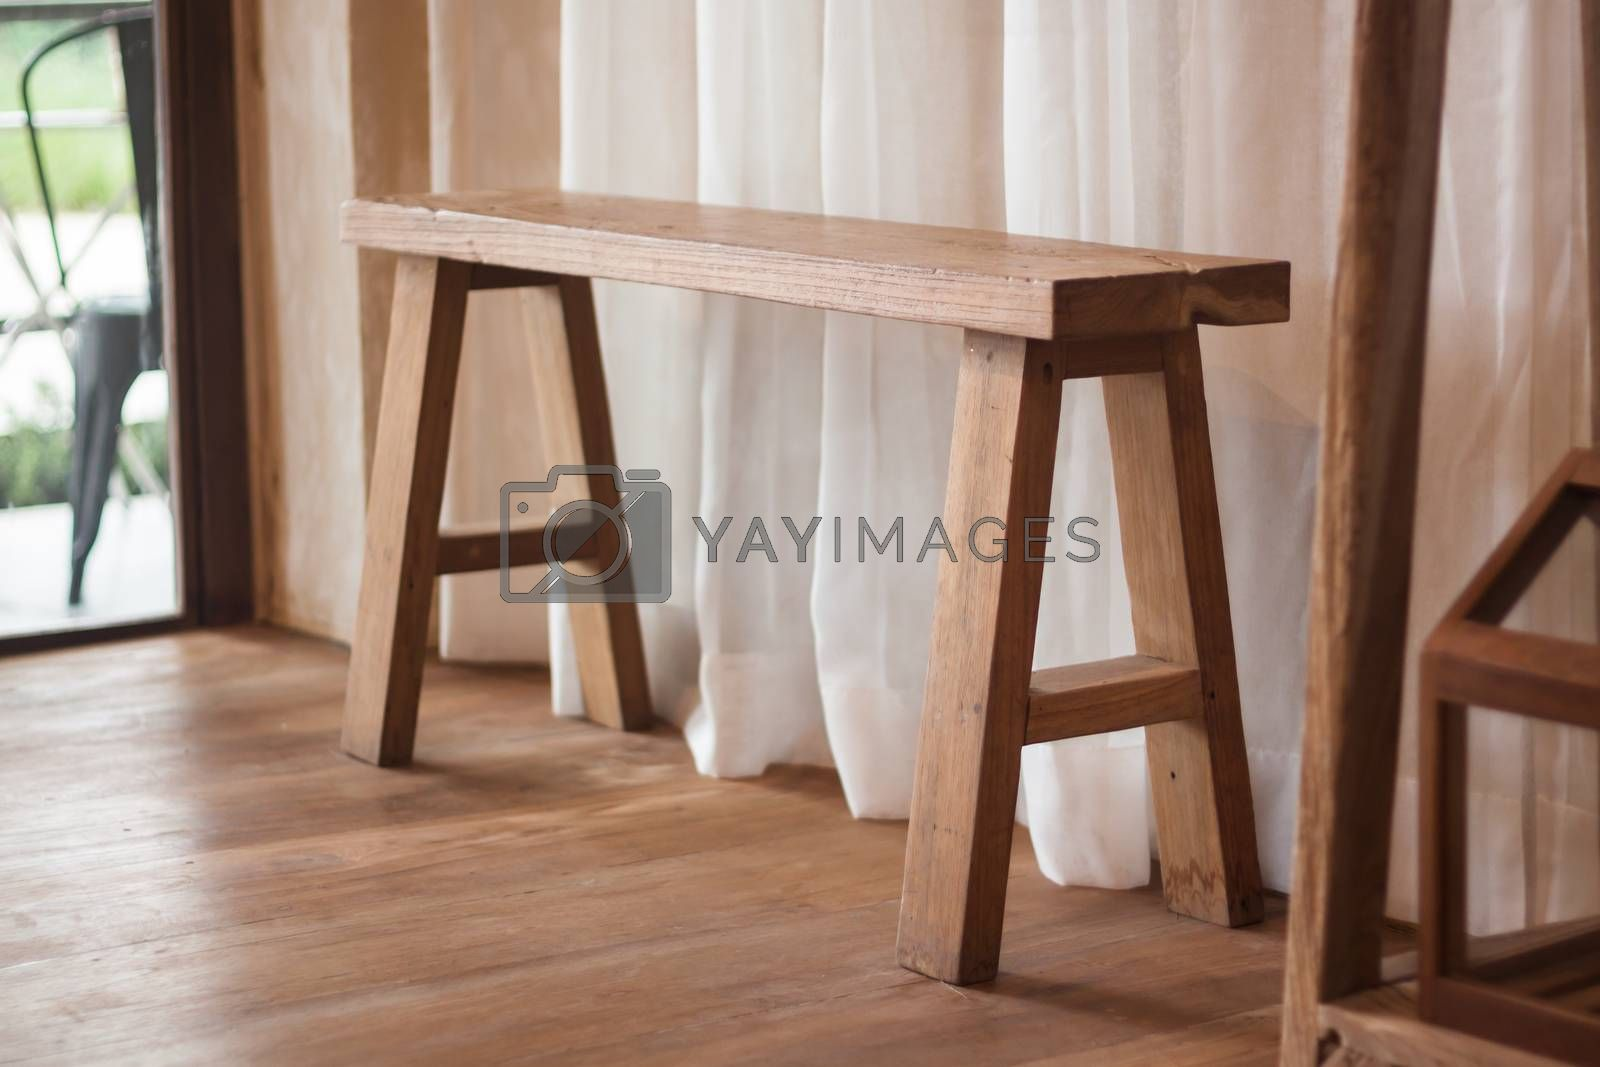 Wooden bench cedorated in house, stock photo